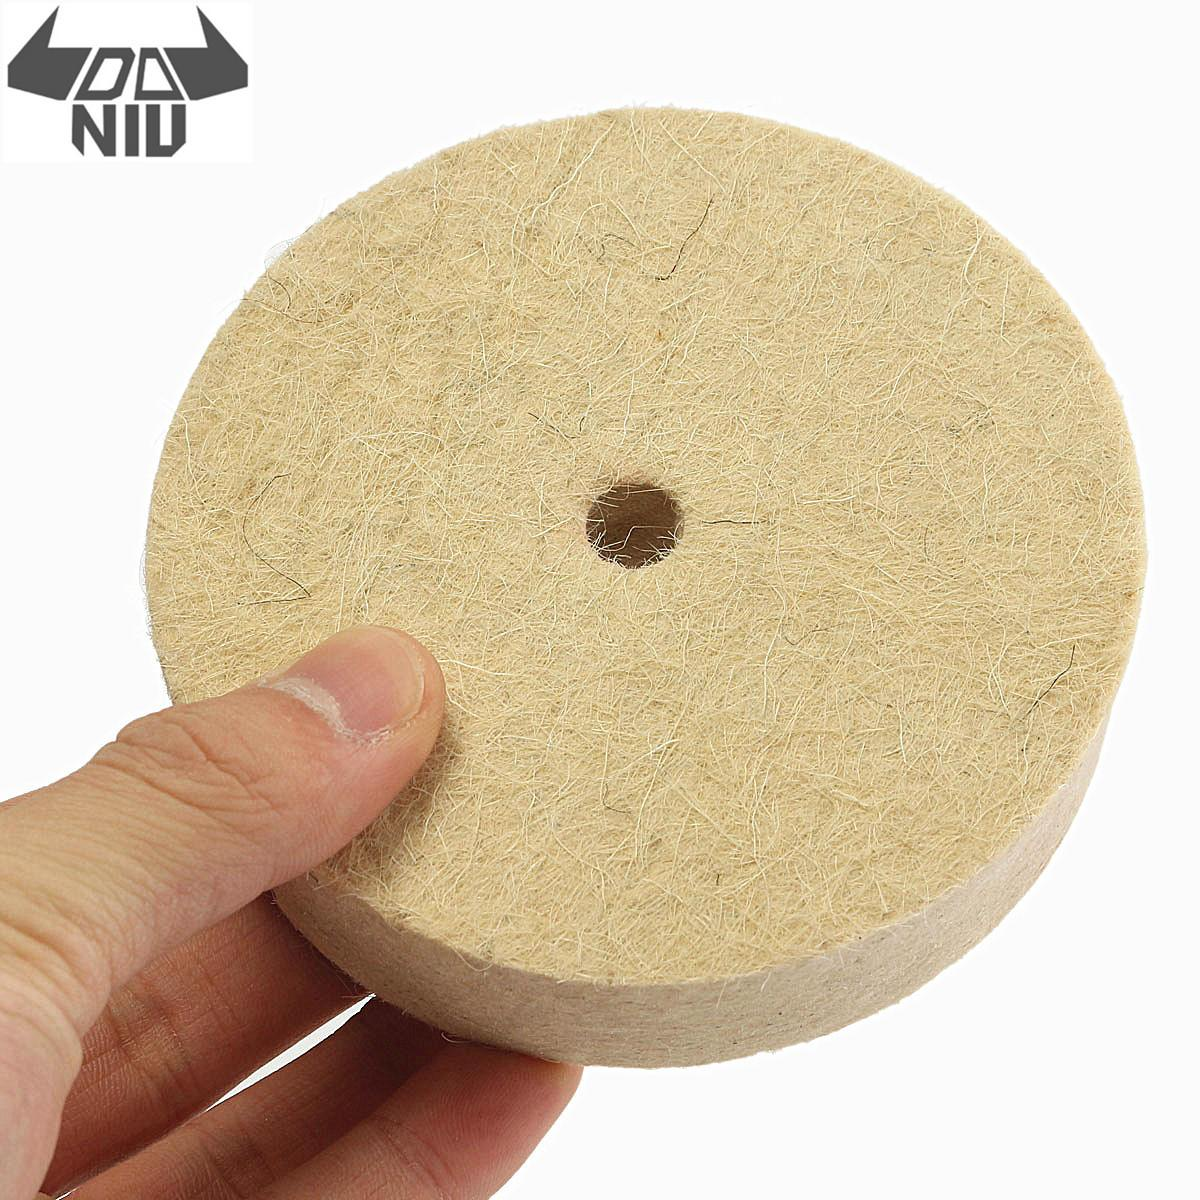 DANIU 1PC 6 Inch 150mm Wool Felt Polishing Buffing Round Wheel Wool Felt Polisher Disc Pad Buffer For Wood Metal Polishing